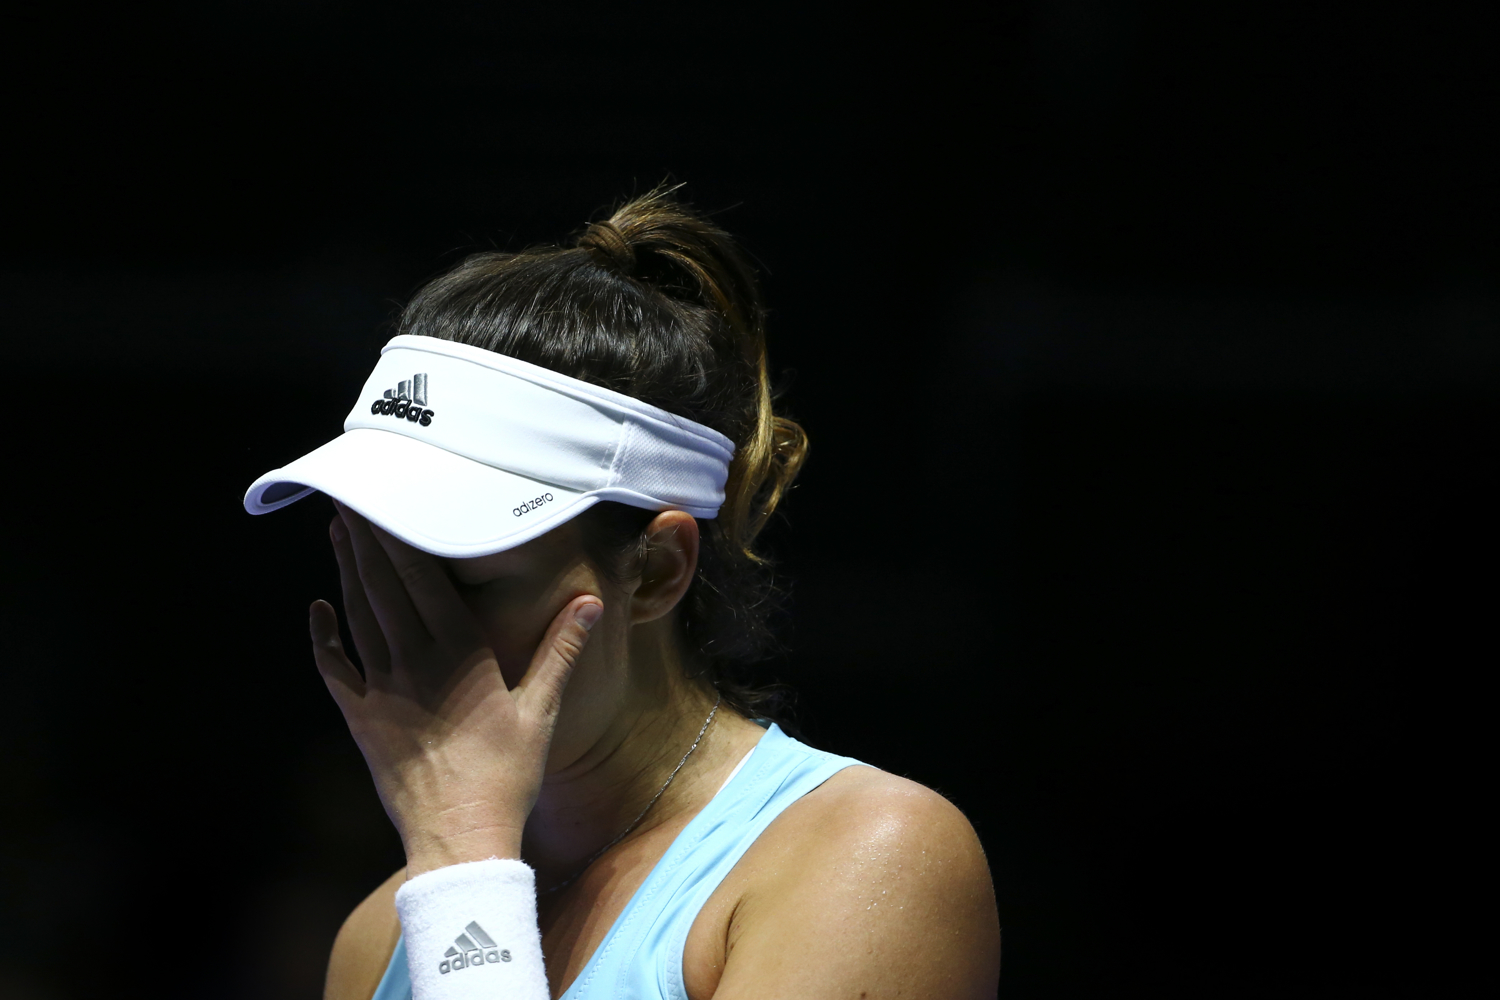 Tennis - BNP Paribas WTA Finals - Singapore Indoor Stadium - 25/10/16 Spain's Garbine Muguruza reacts during her round robin match Mandatory Credit: Action Images / Yong Teck Lim Livepic EDITORIAL USE ONLY.